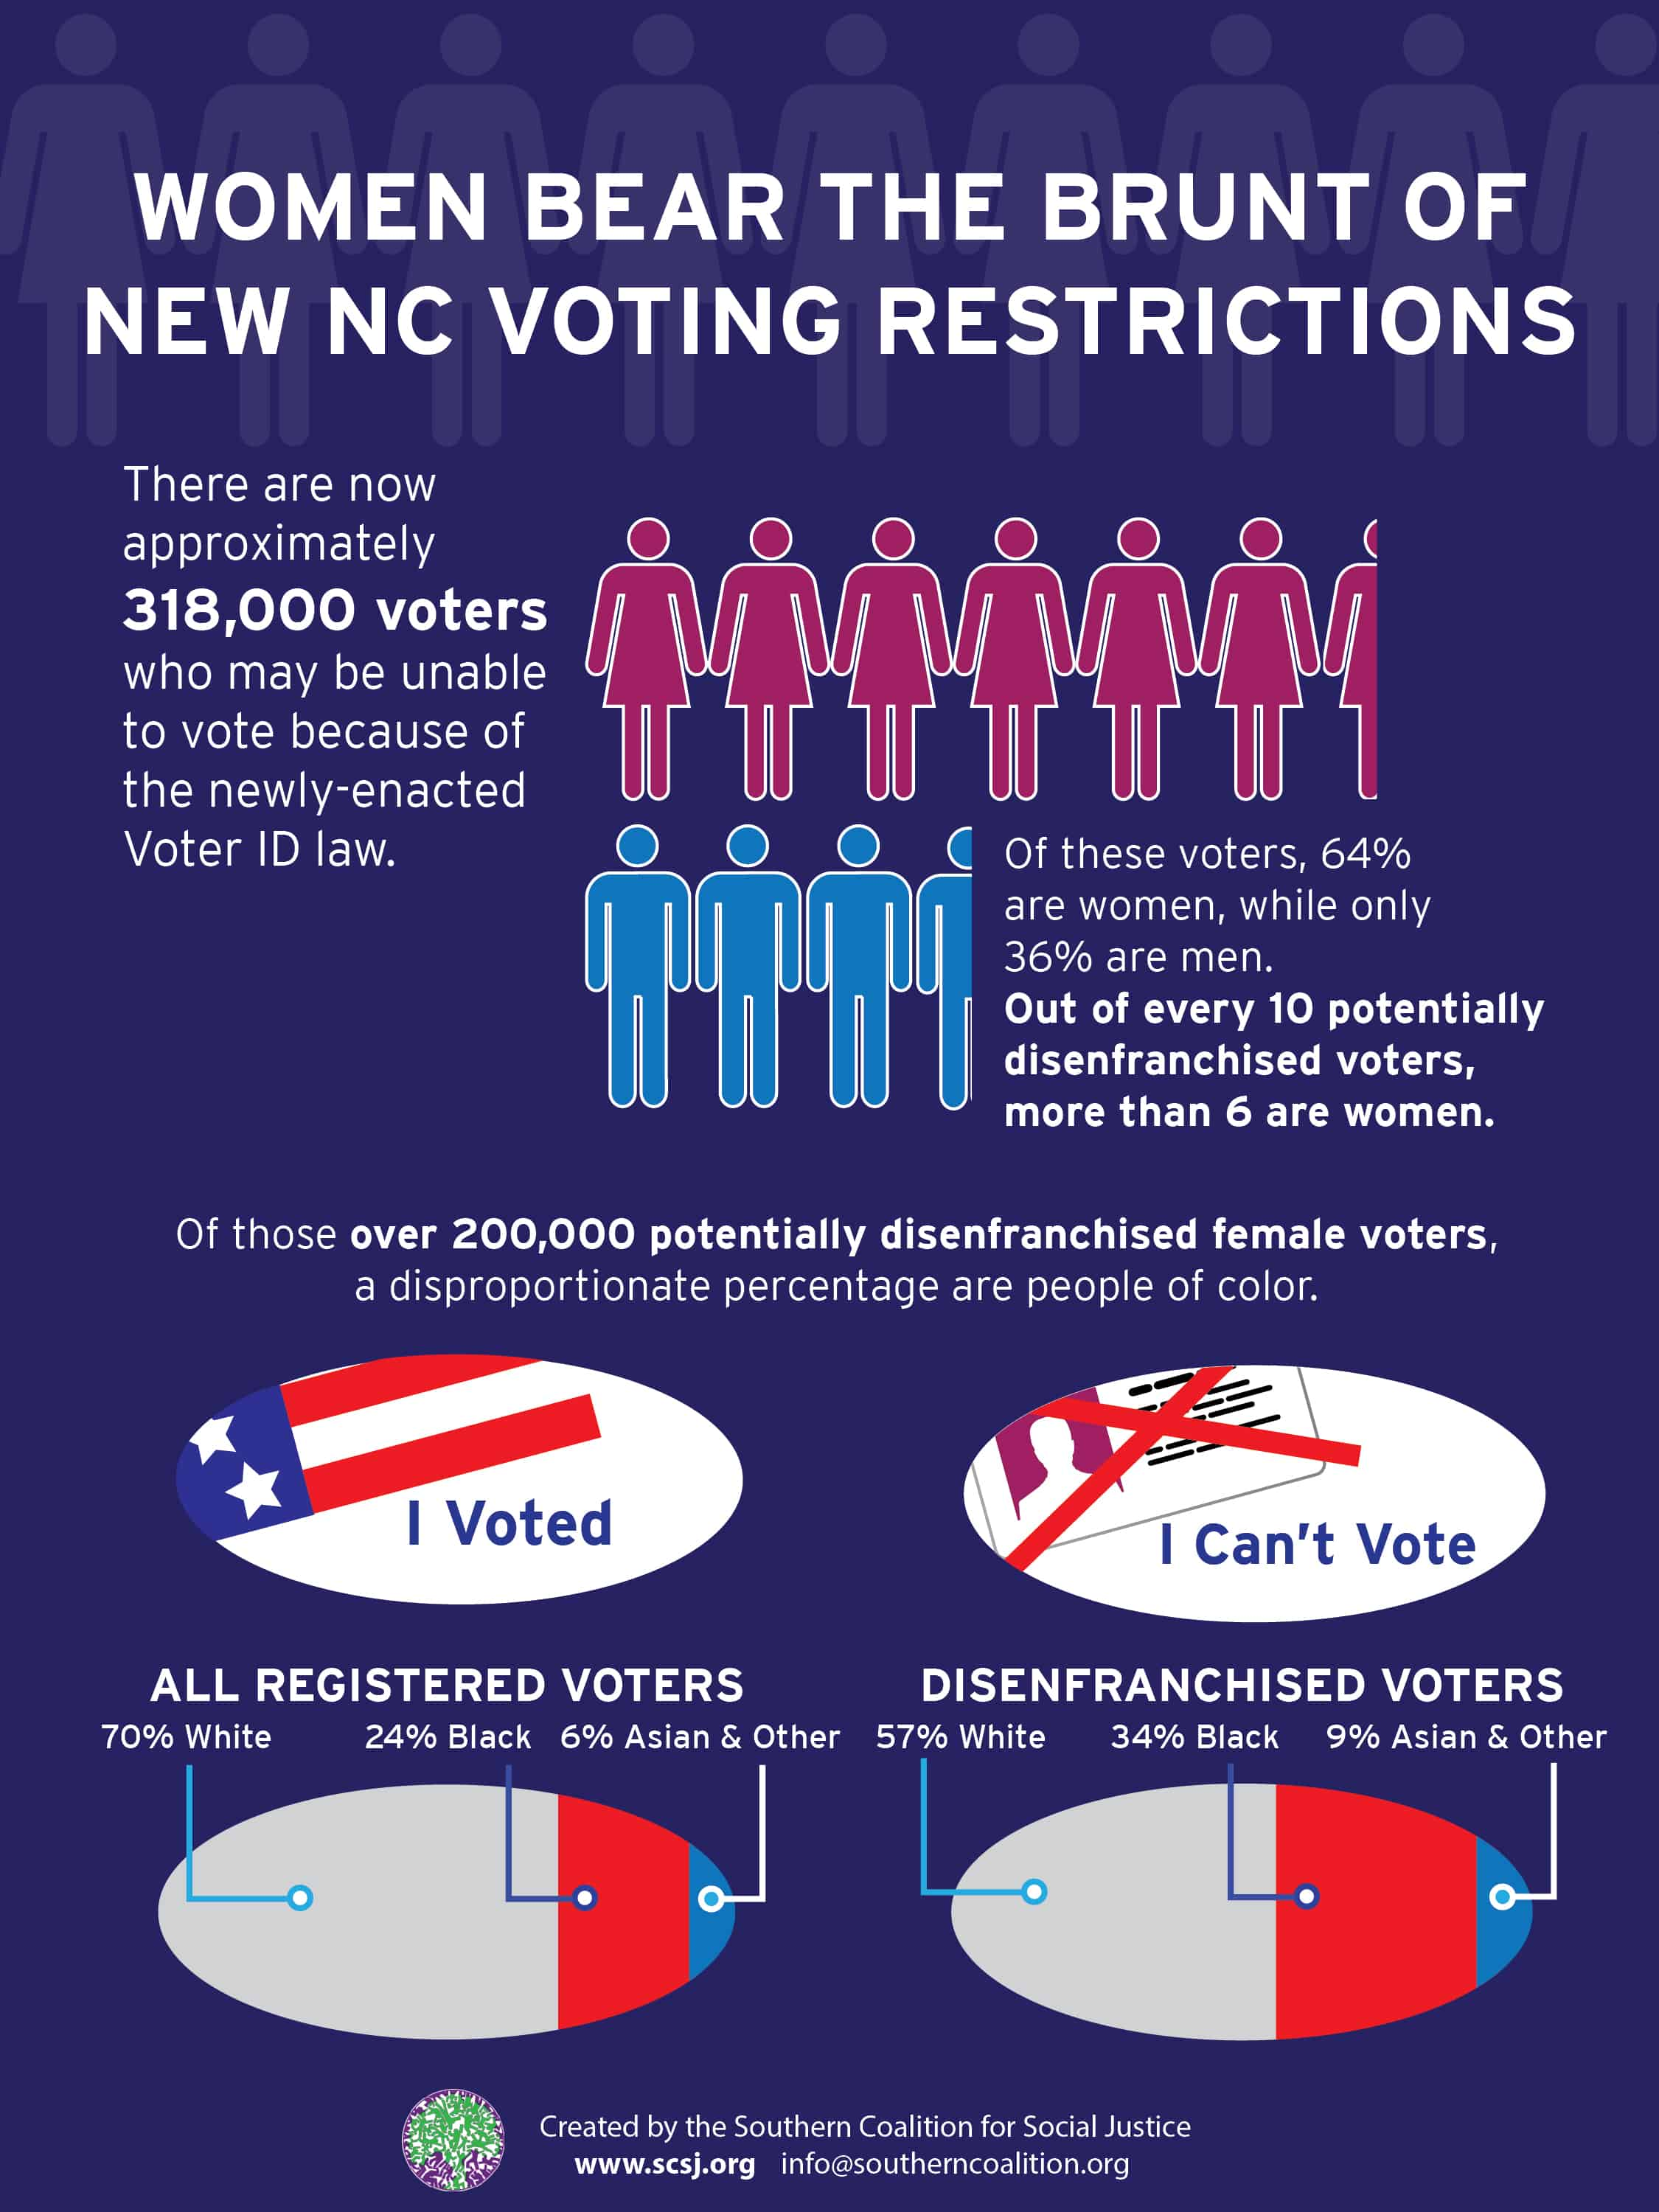 Major Of For Justice On Coalition Voter Social Women Id Impact Southern The Color -